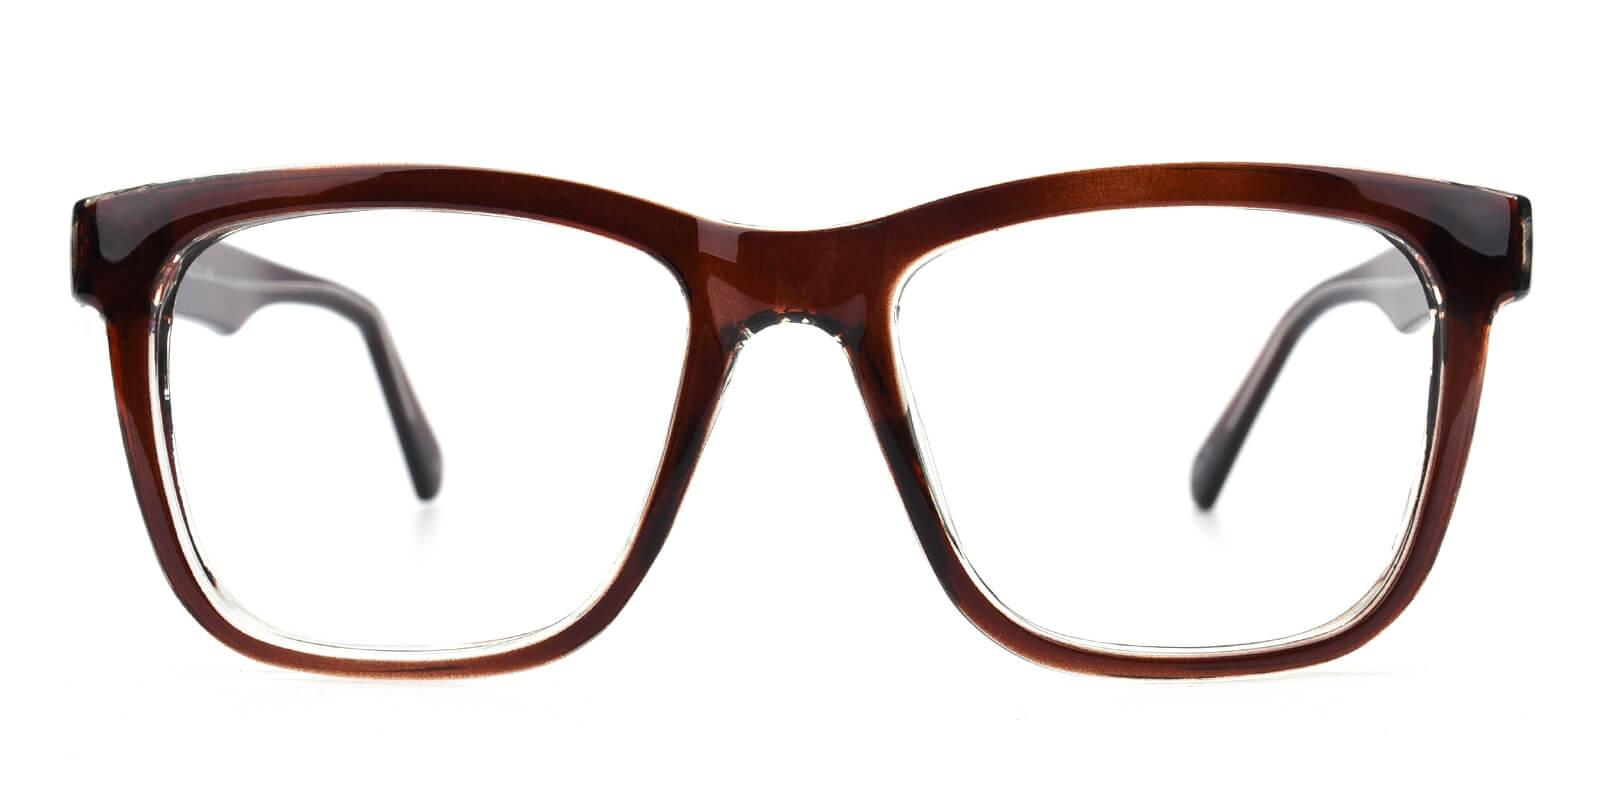 Colaan-Brown-Square-Plastic-Eyeglasses-additional2